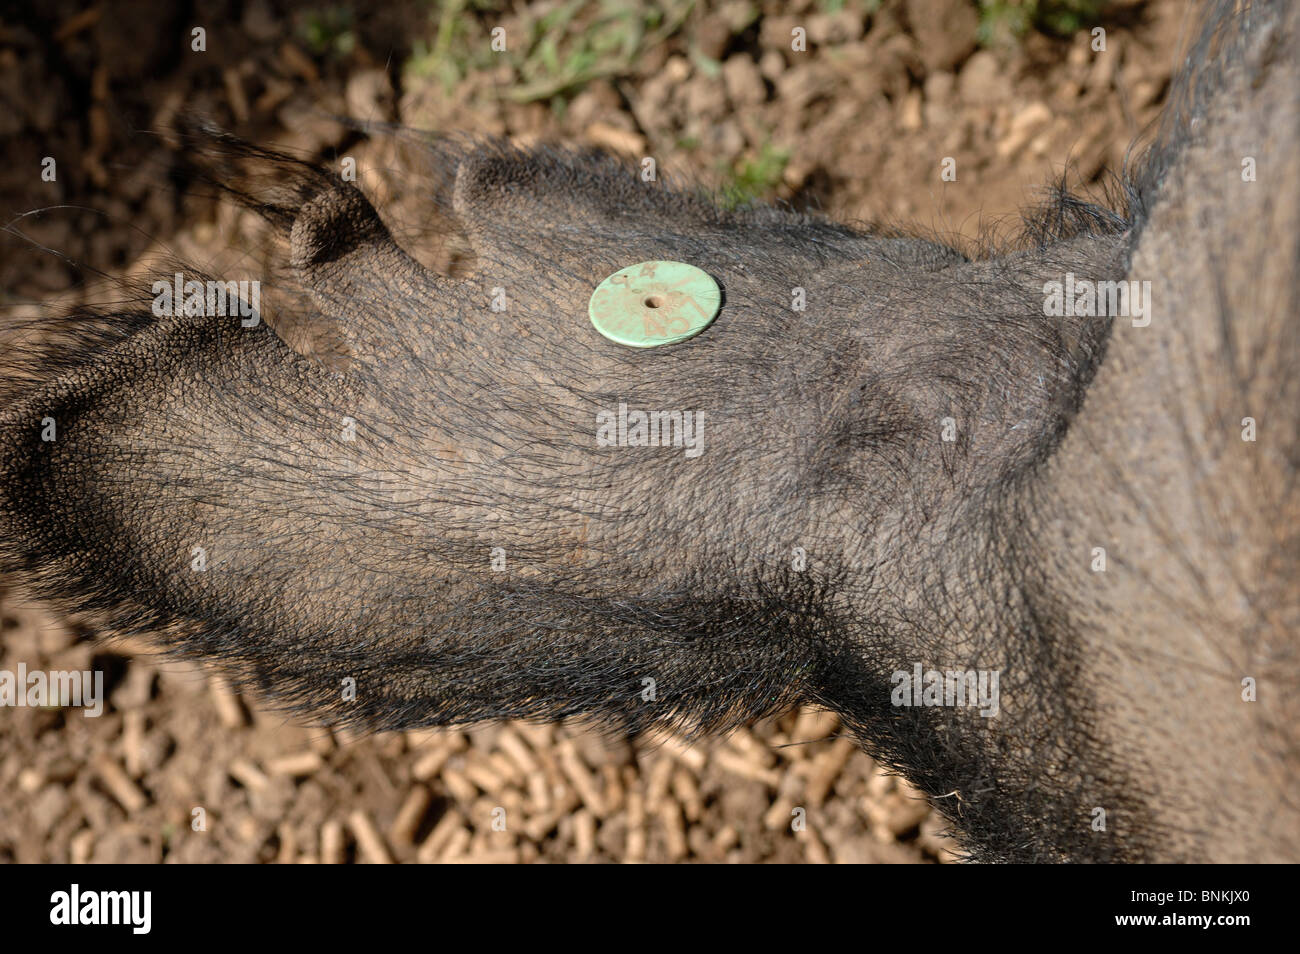 Ear tag in the torn ear of a Berkshire boar - Stock Image